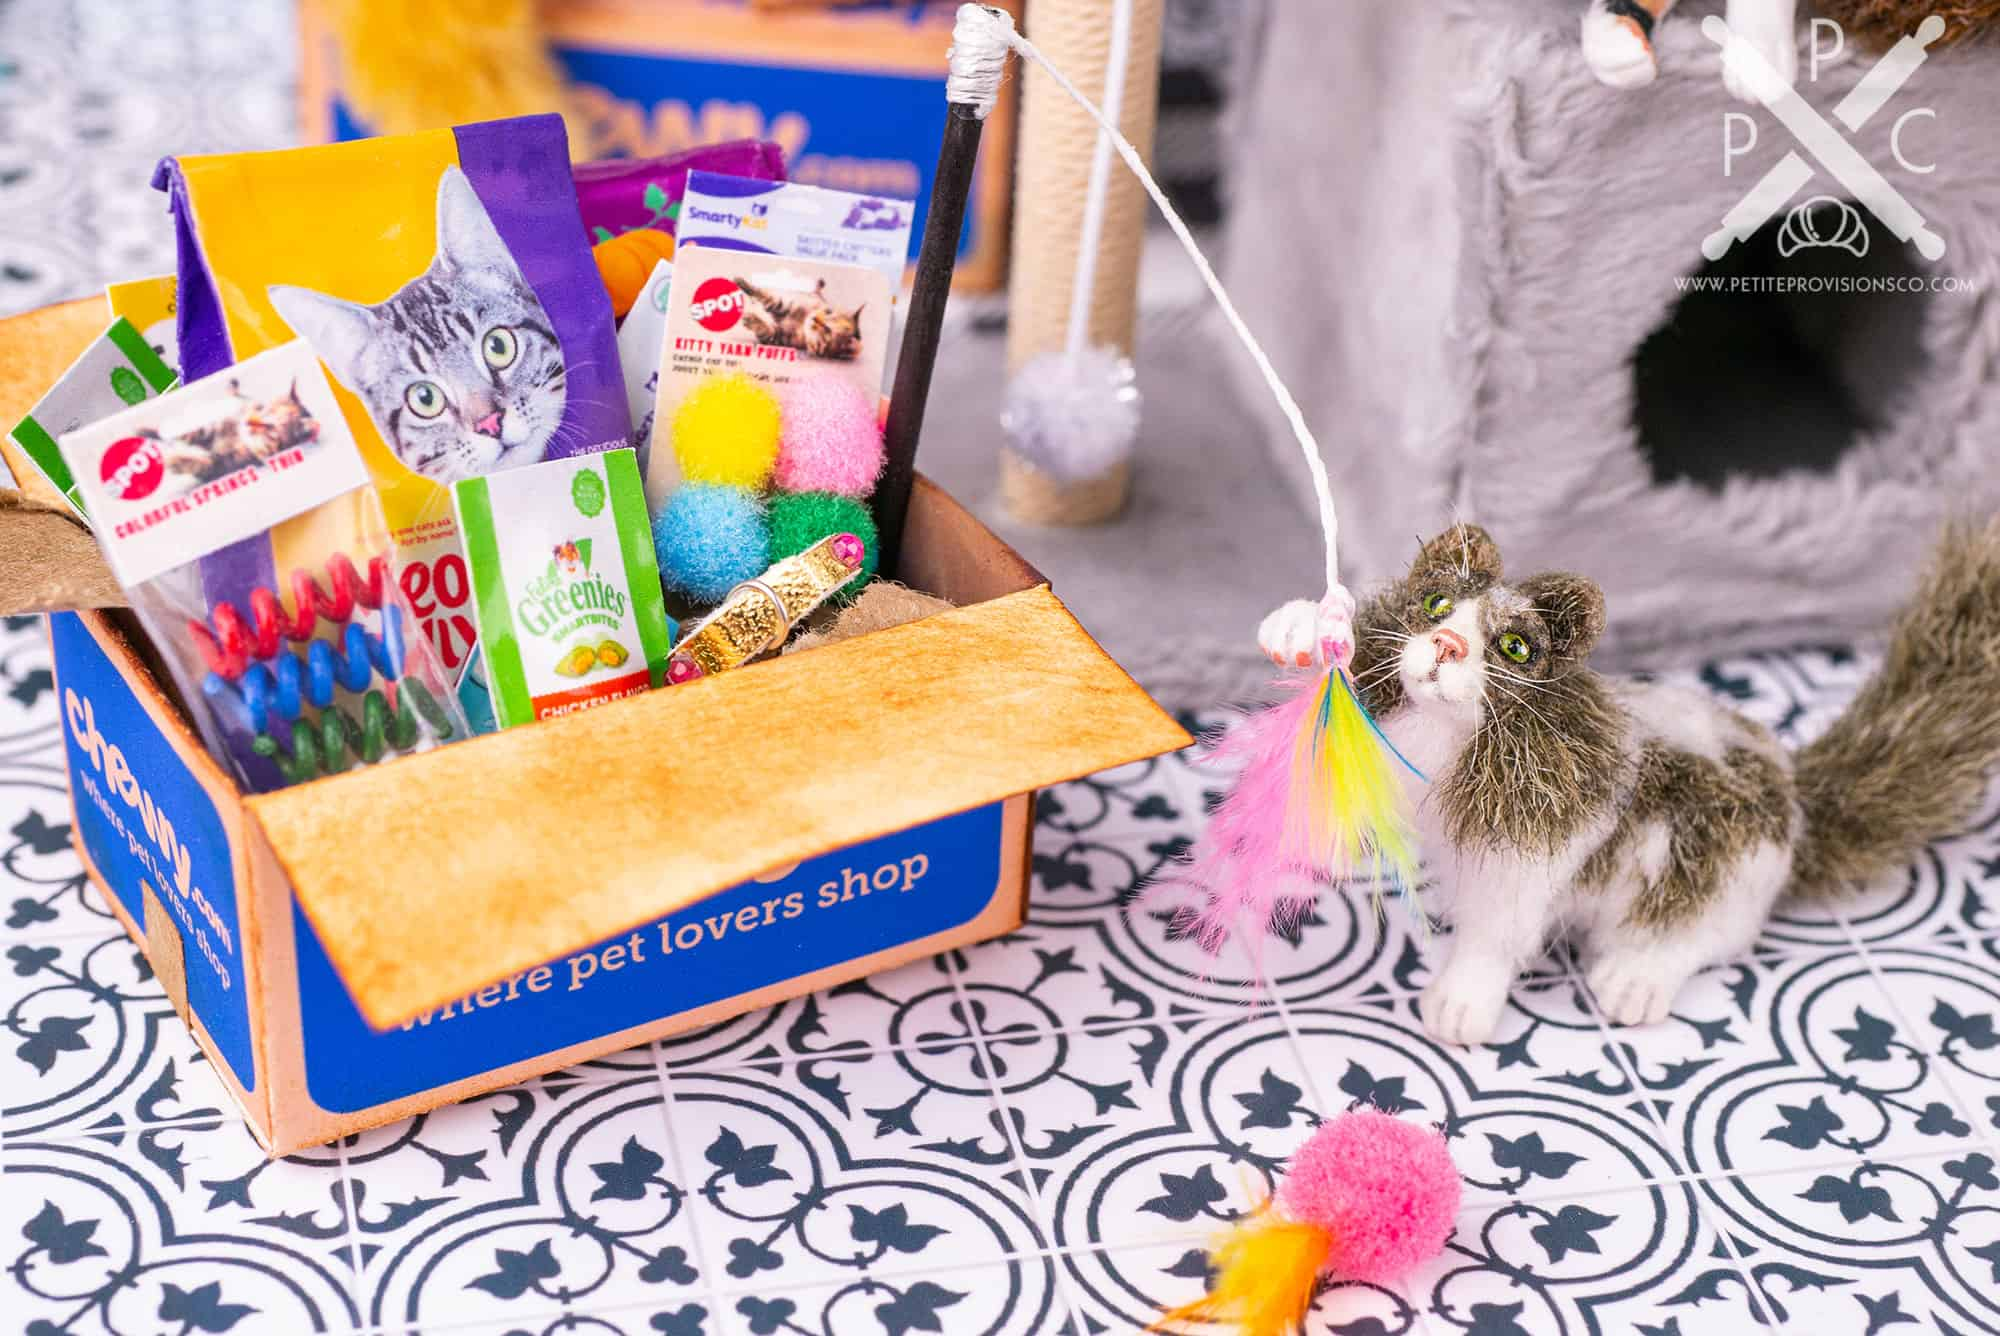 1/12 scale cat with a box full of cat food and toys from Chewy in a dollhouse miniature scene by Erika Pitera, The Petite Provisions Co.